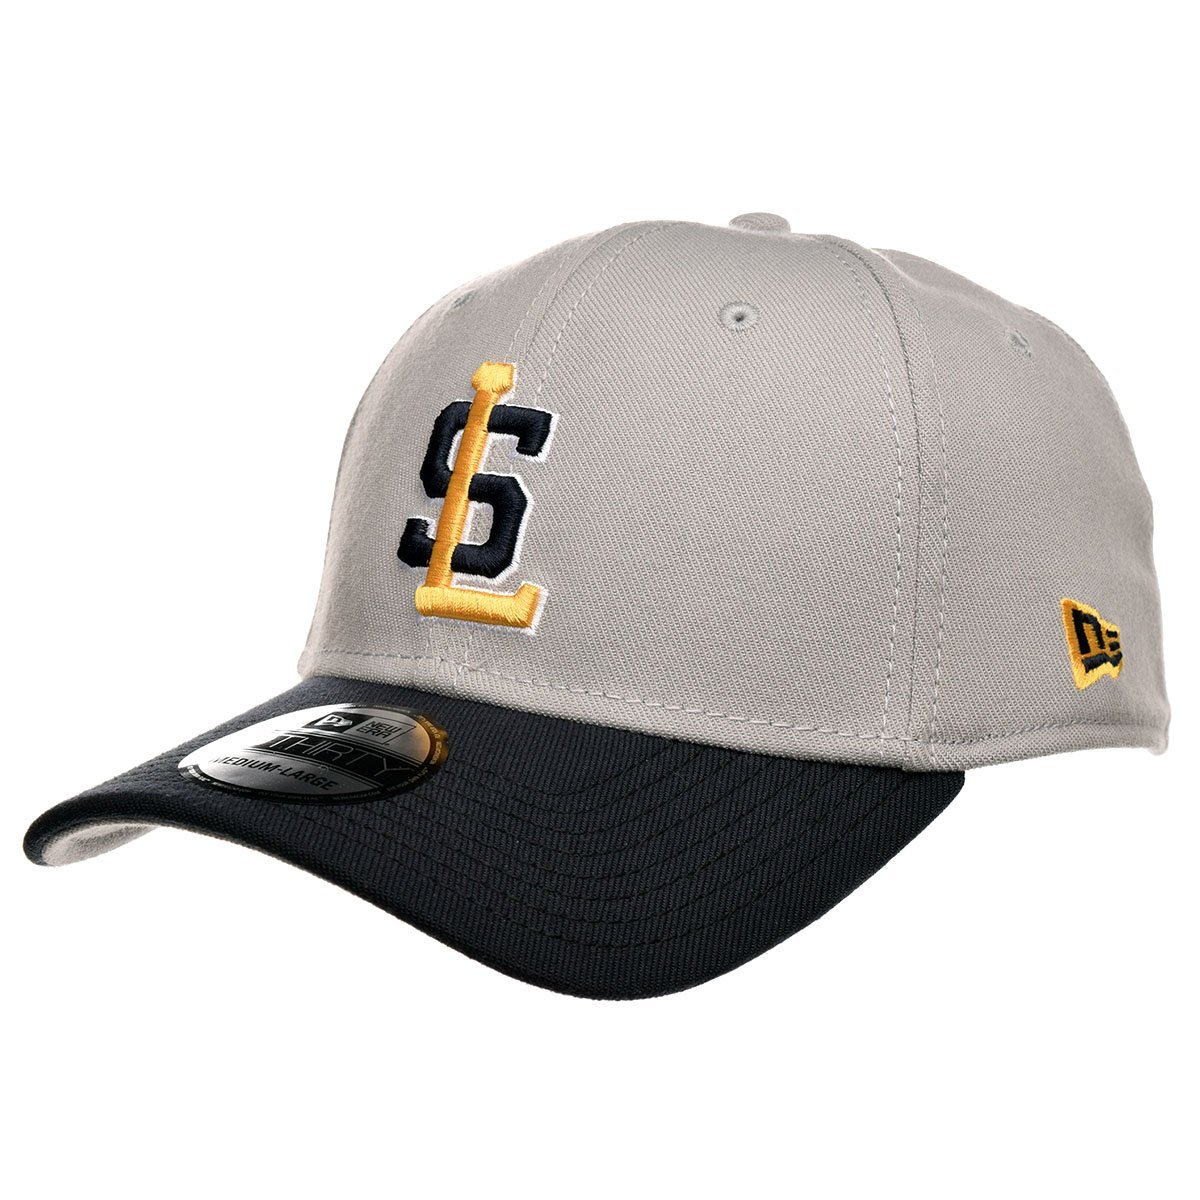 4139227669ef5 Get Quotations · Salt Lake Bees New Era Gray Navy Throwback 39Thirty  Stretch Fit Hat (Gray)